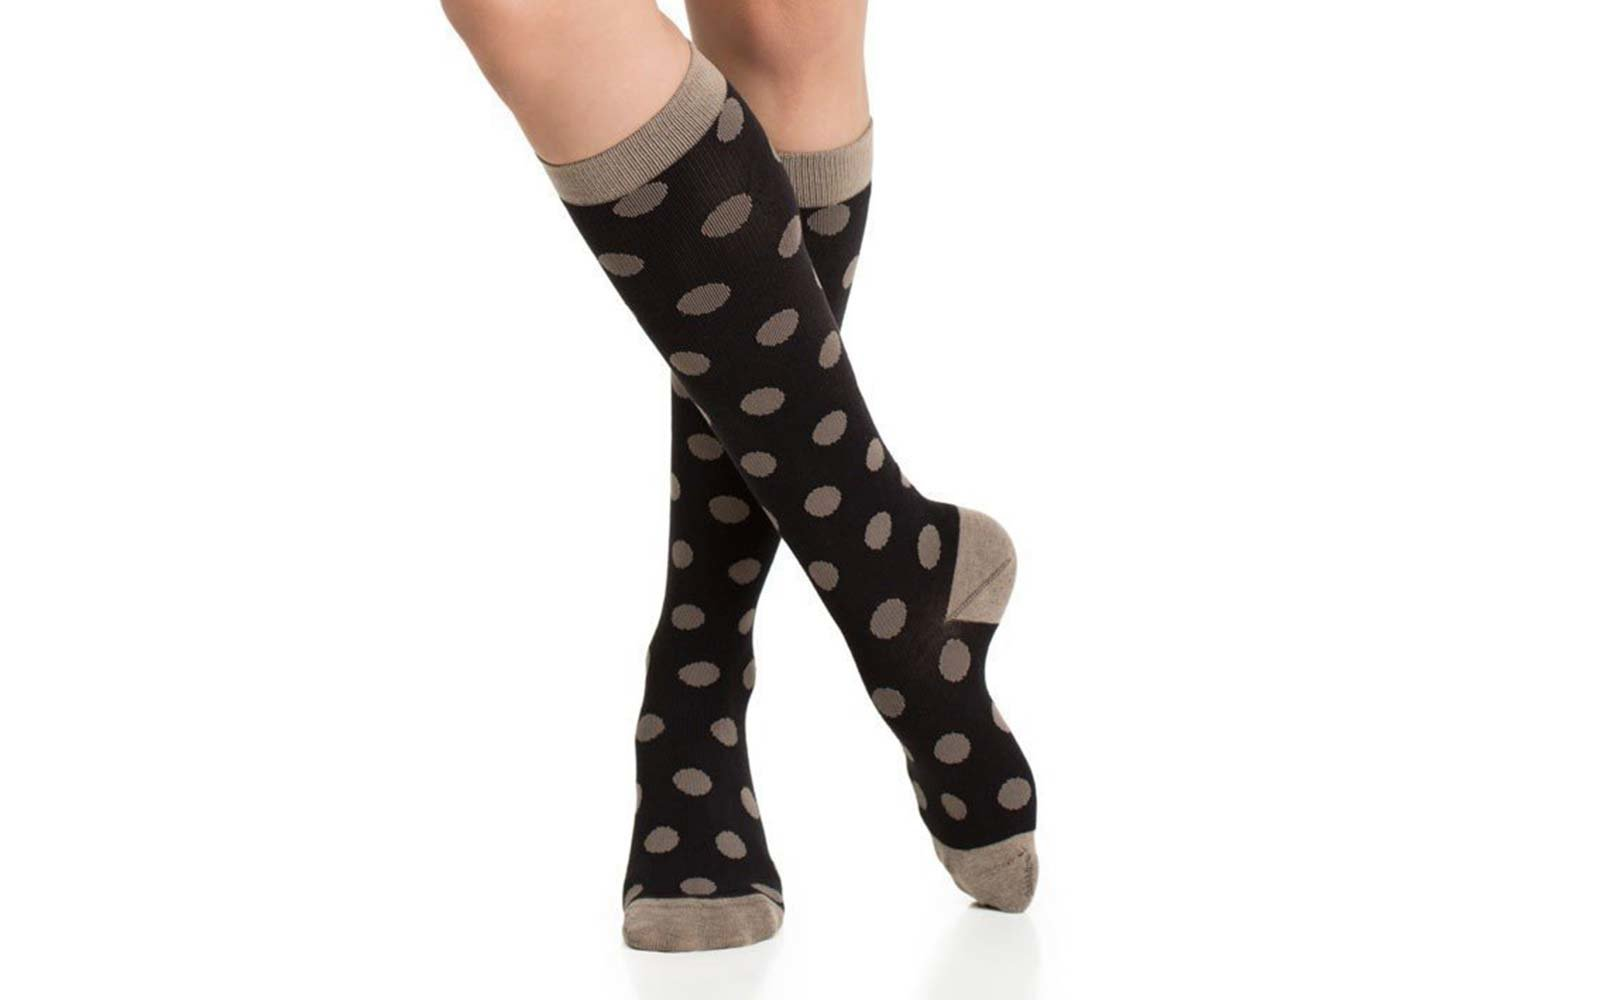 Travel Packing Essentials Vim Vigr dress socks